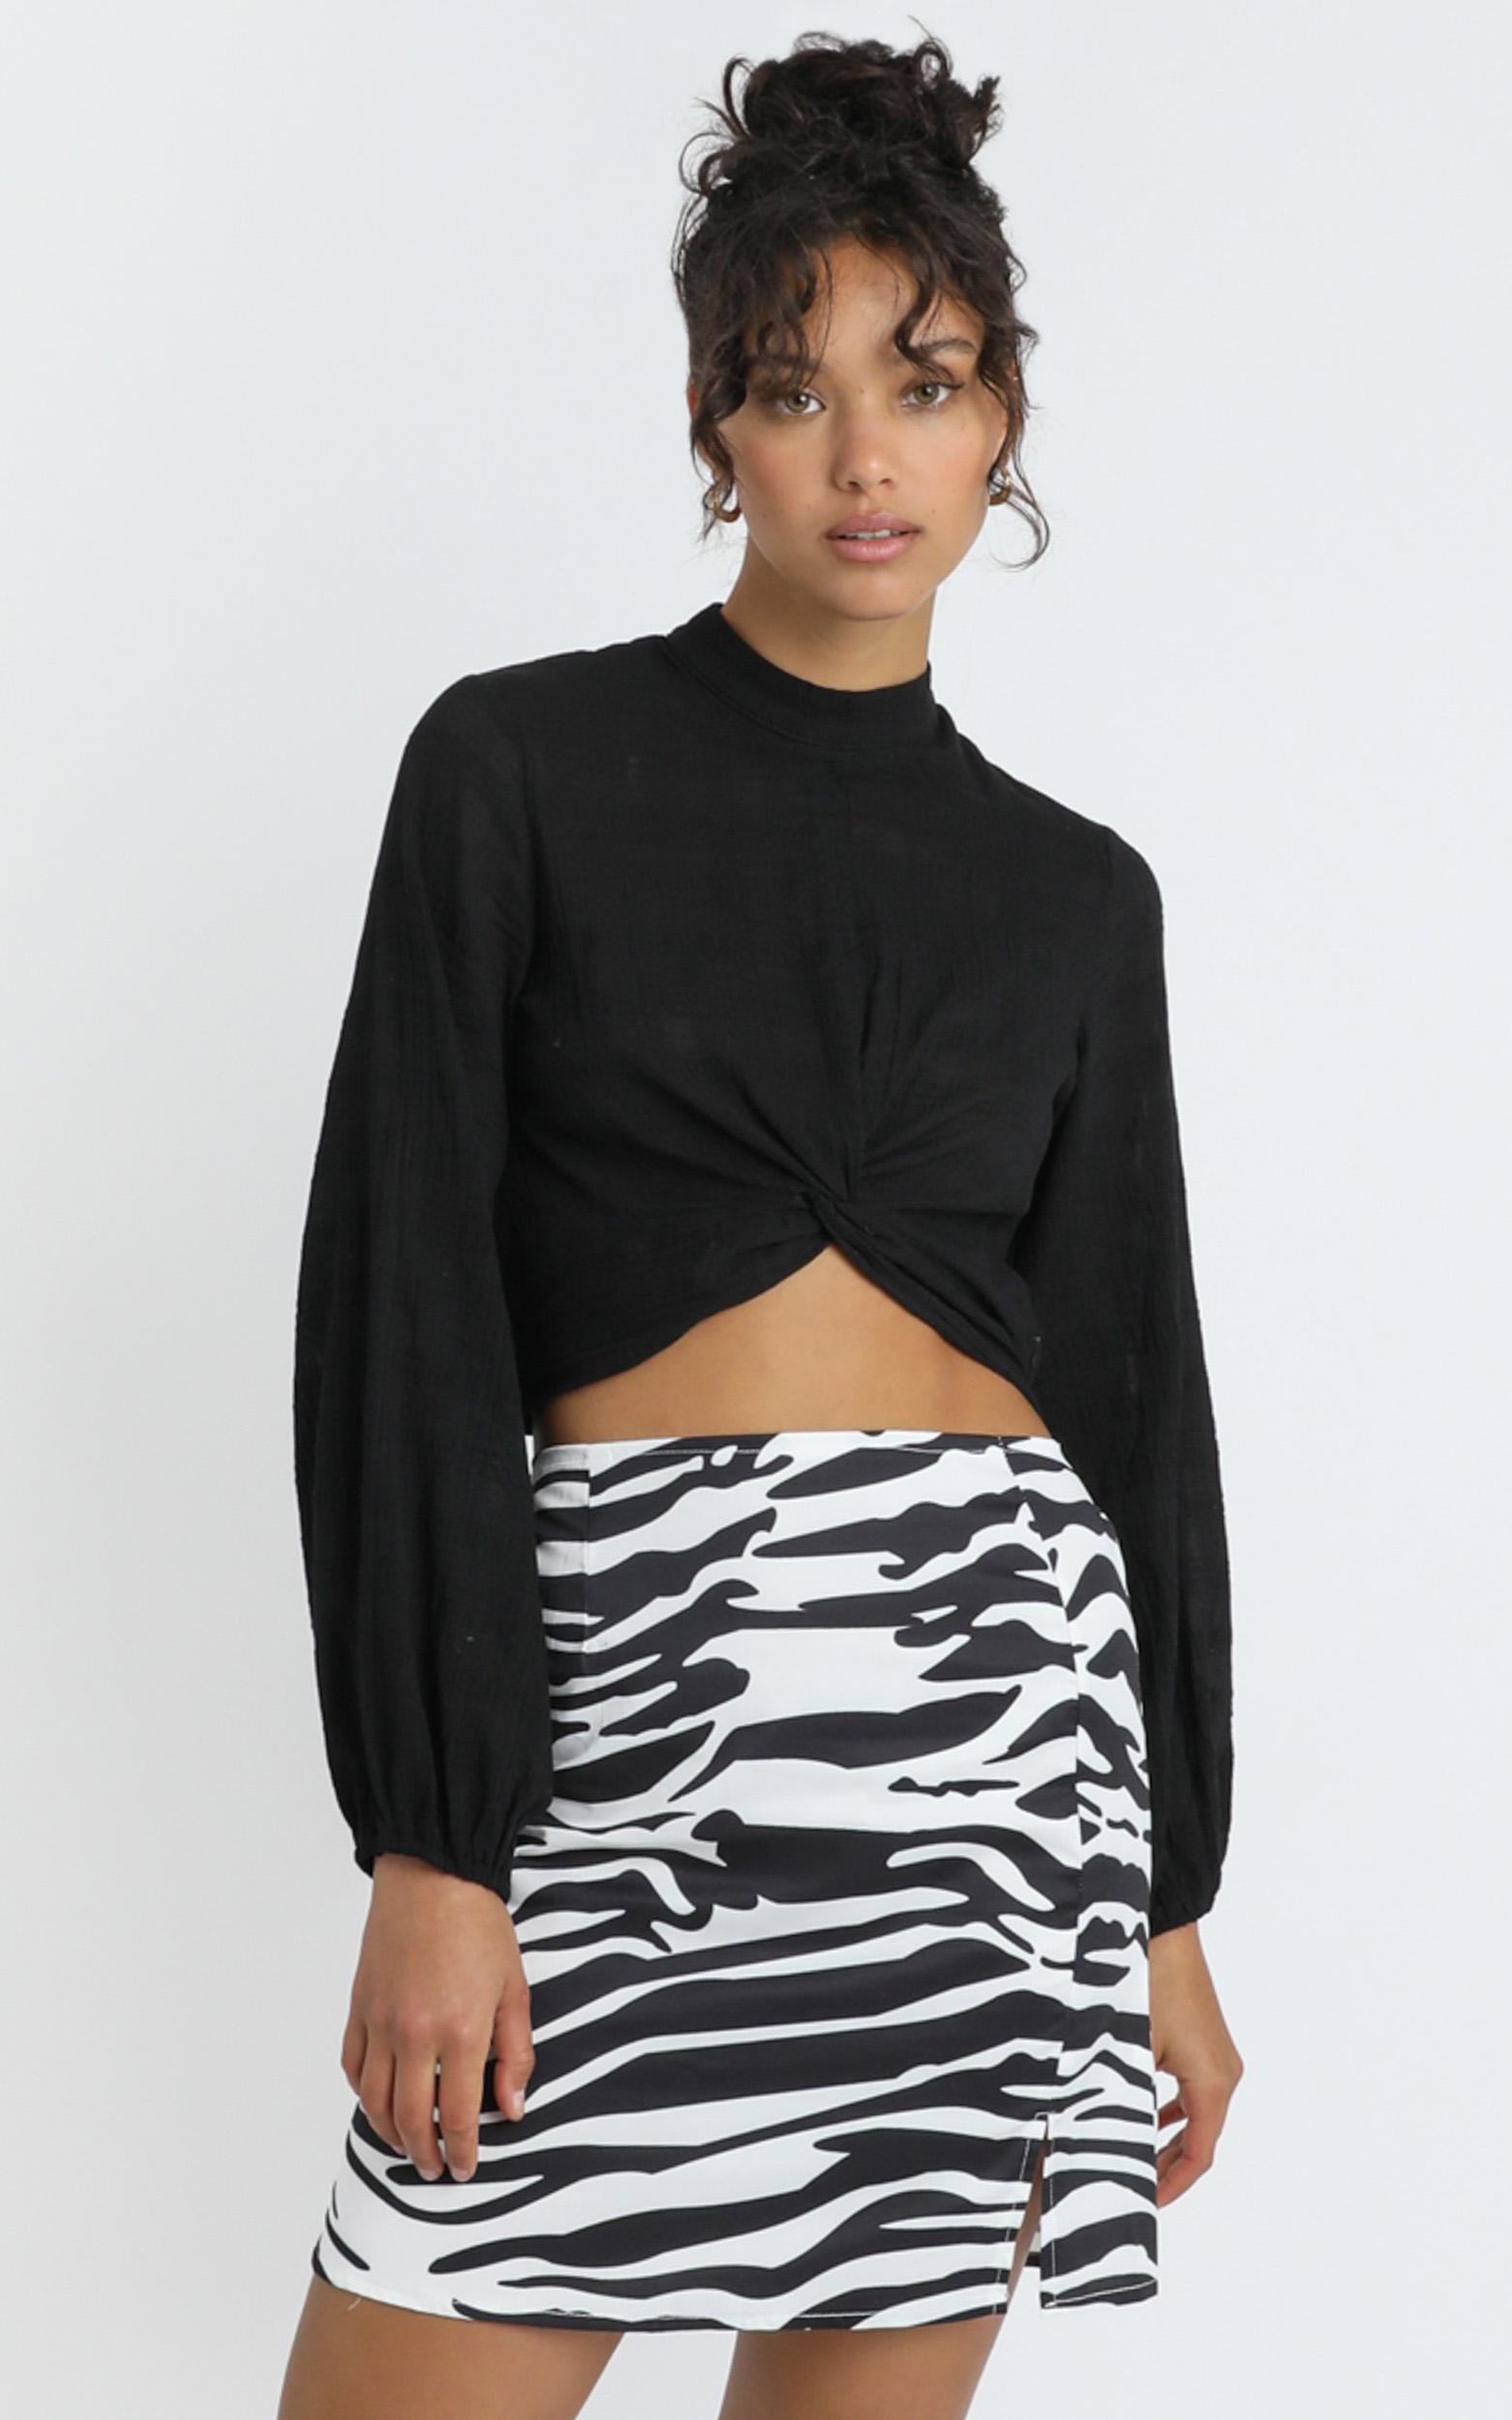 Paige Skirt in Zebra Print - 6 (XS), White, hi-res image number null